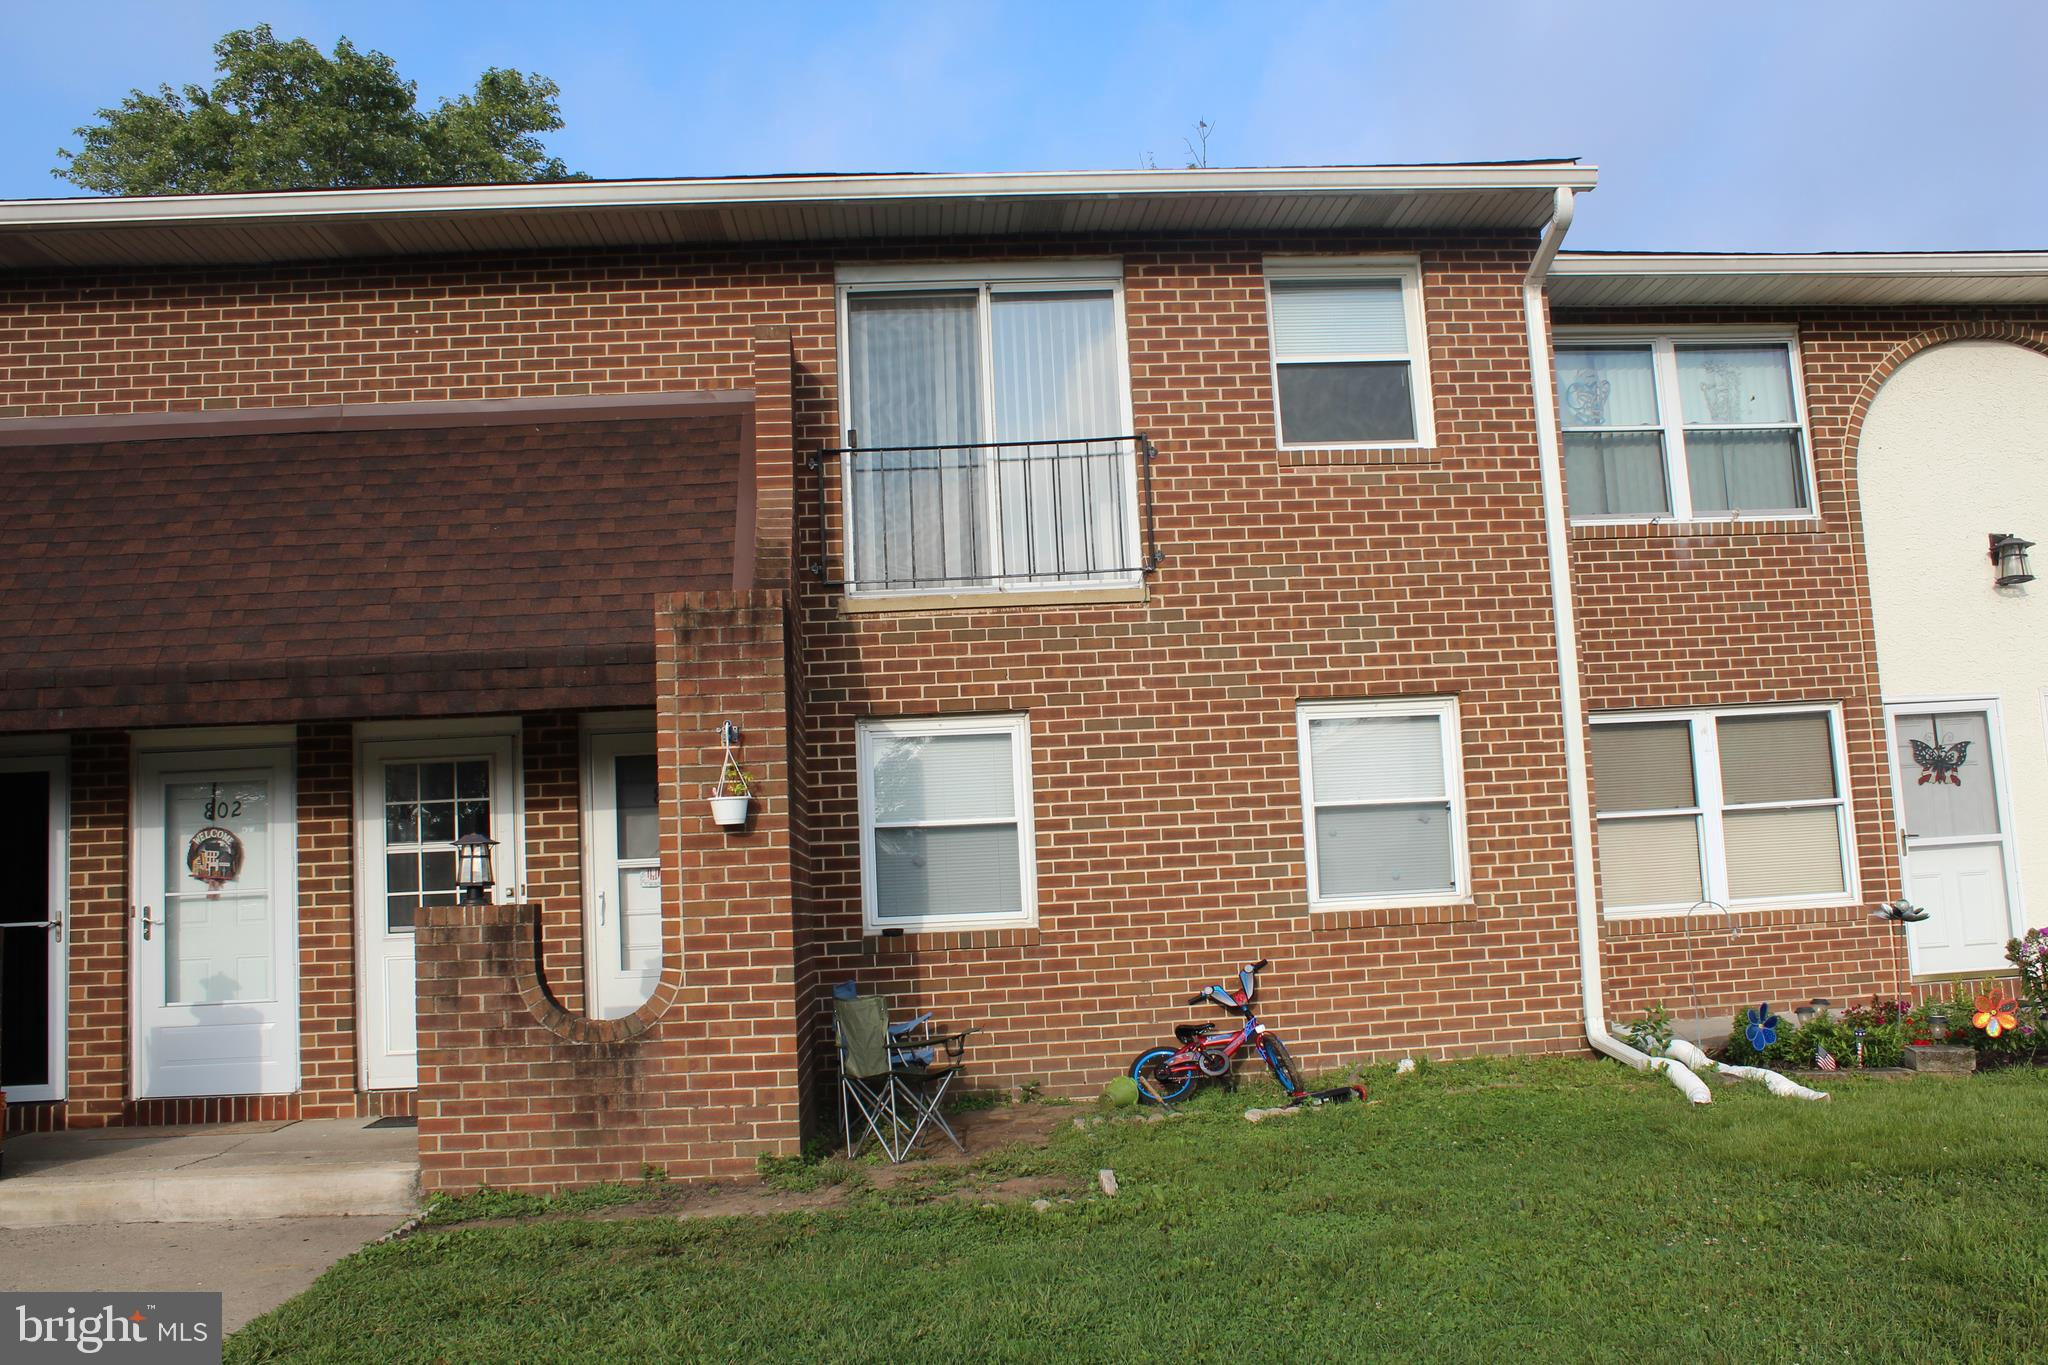 Find Homes for Rent in Westville, Greater Philadelphia - Compass